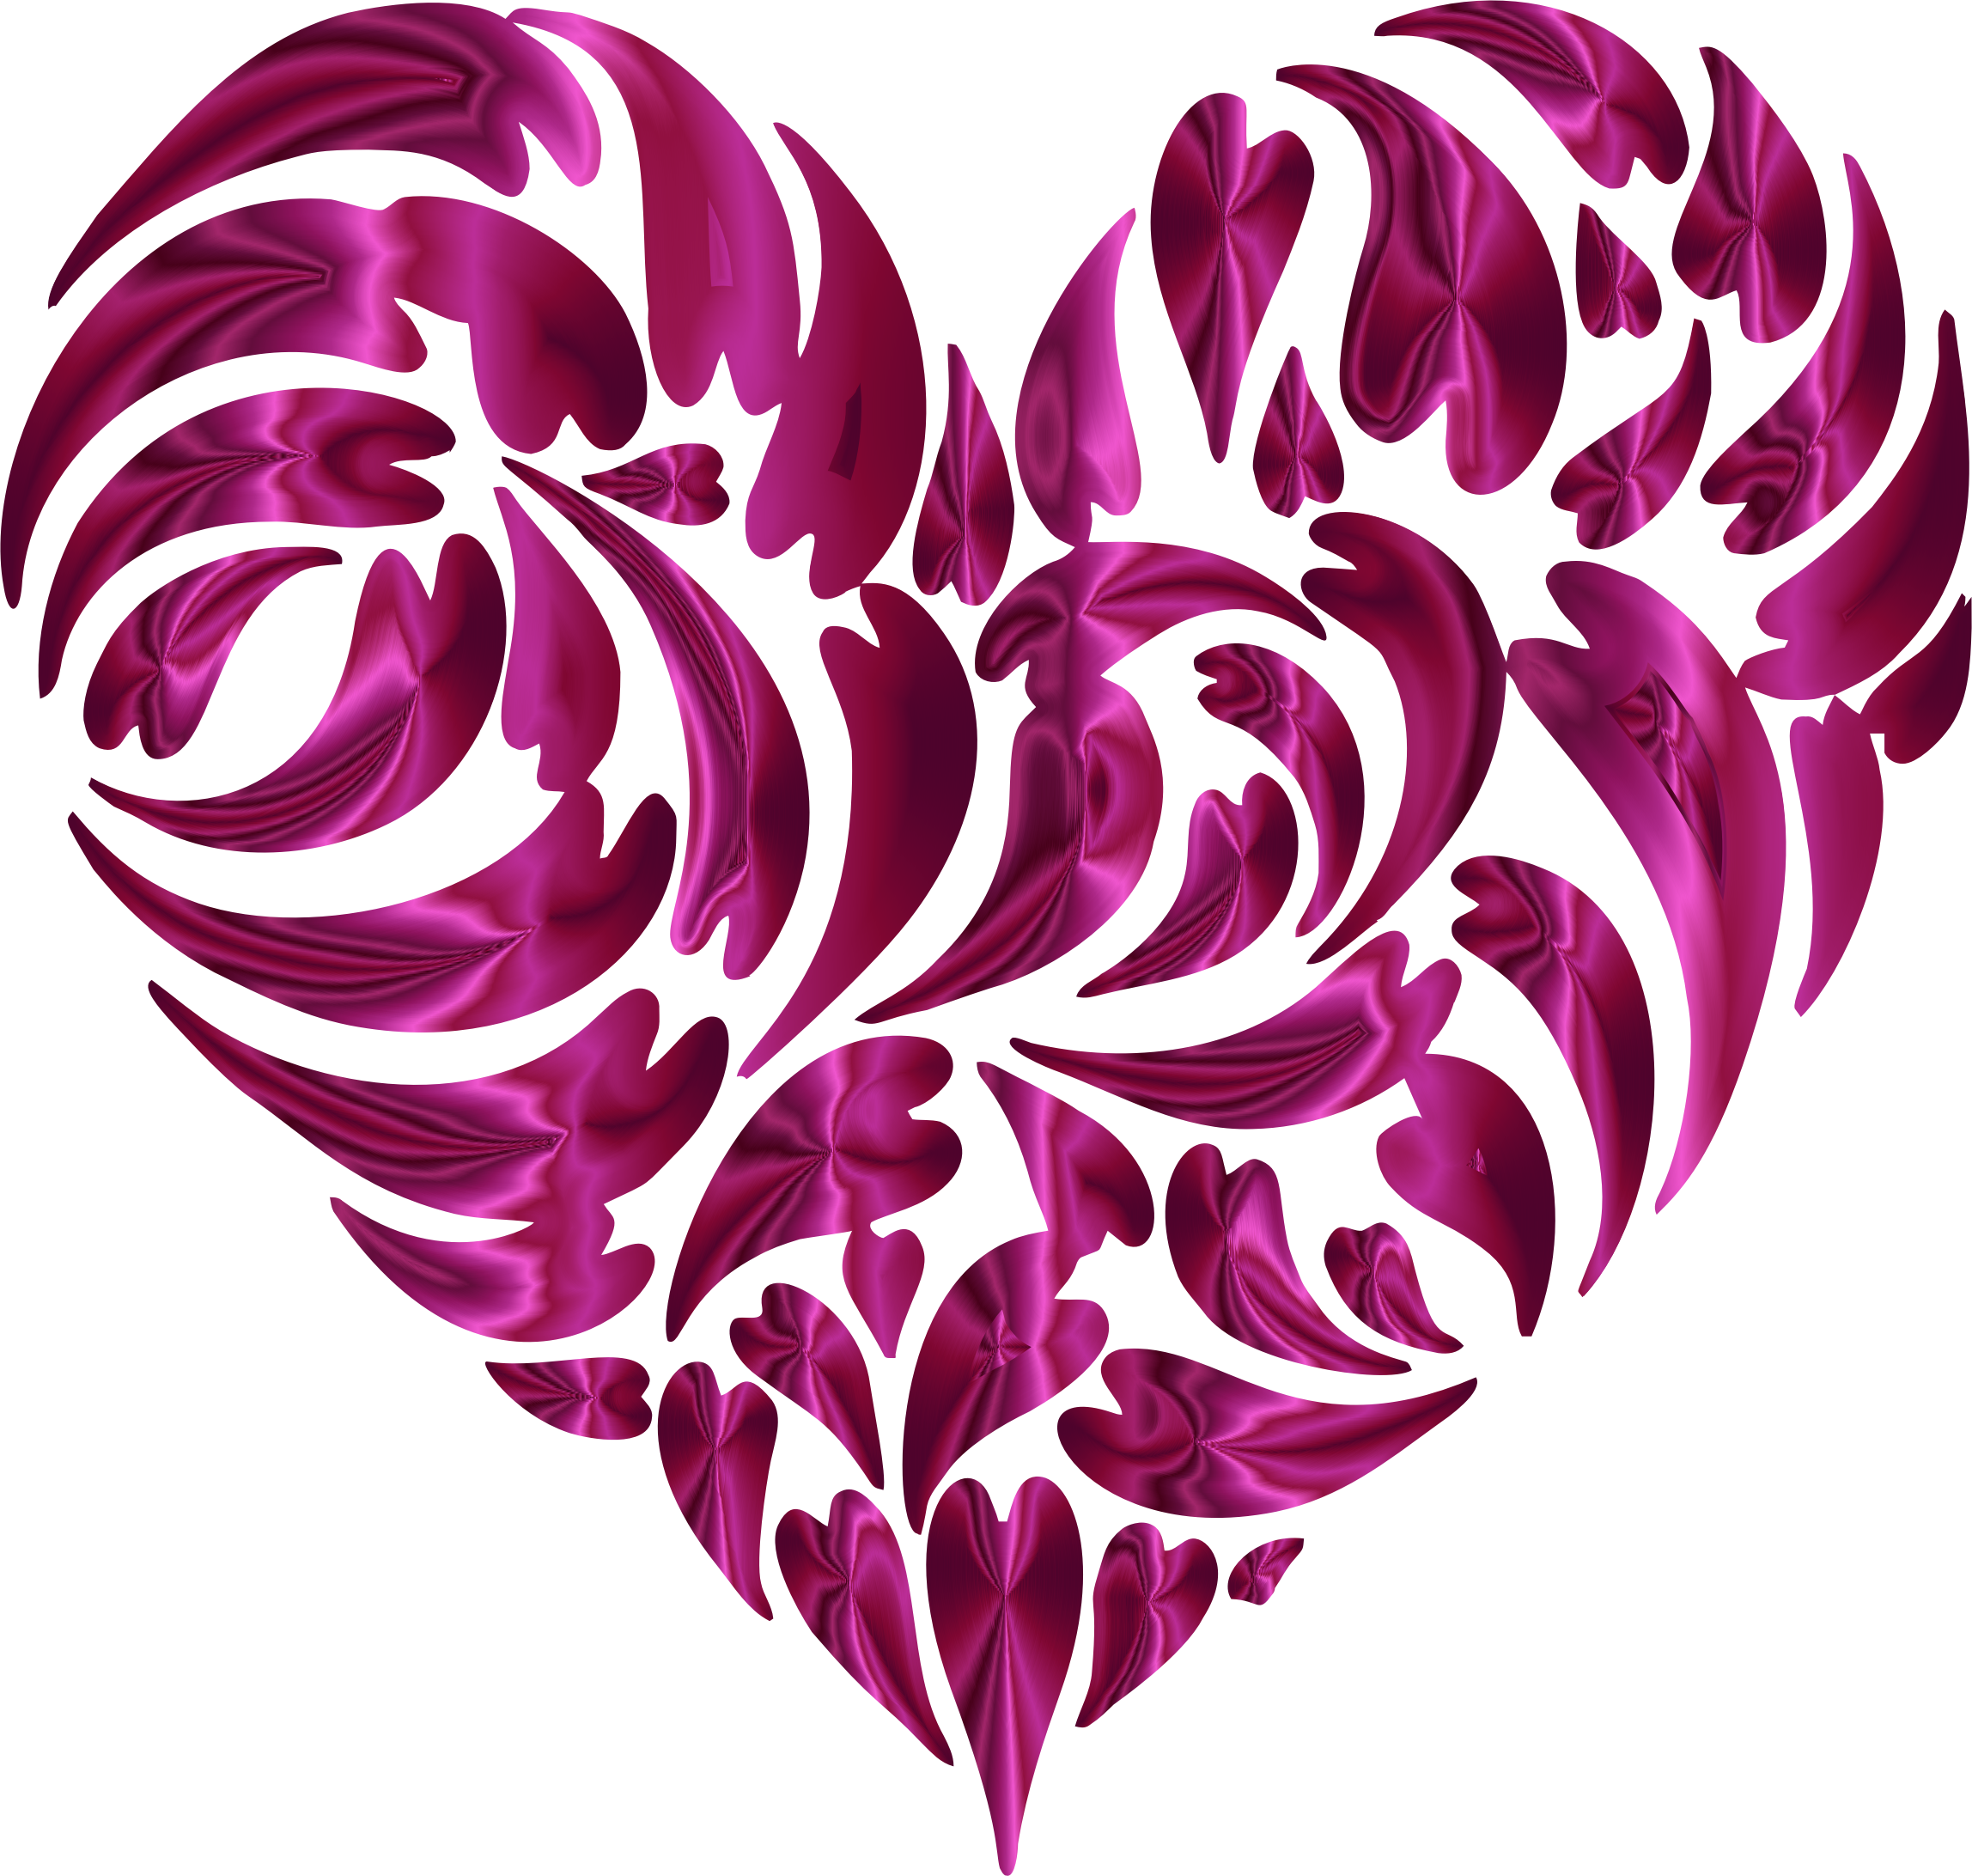 Abstract Distorted Heart Fractal Pink by GDJ